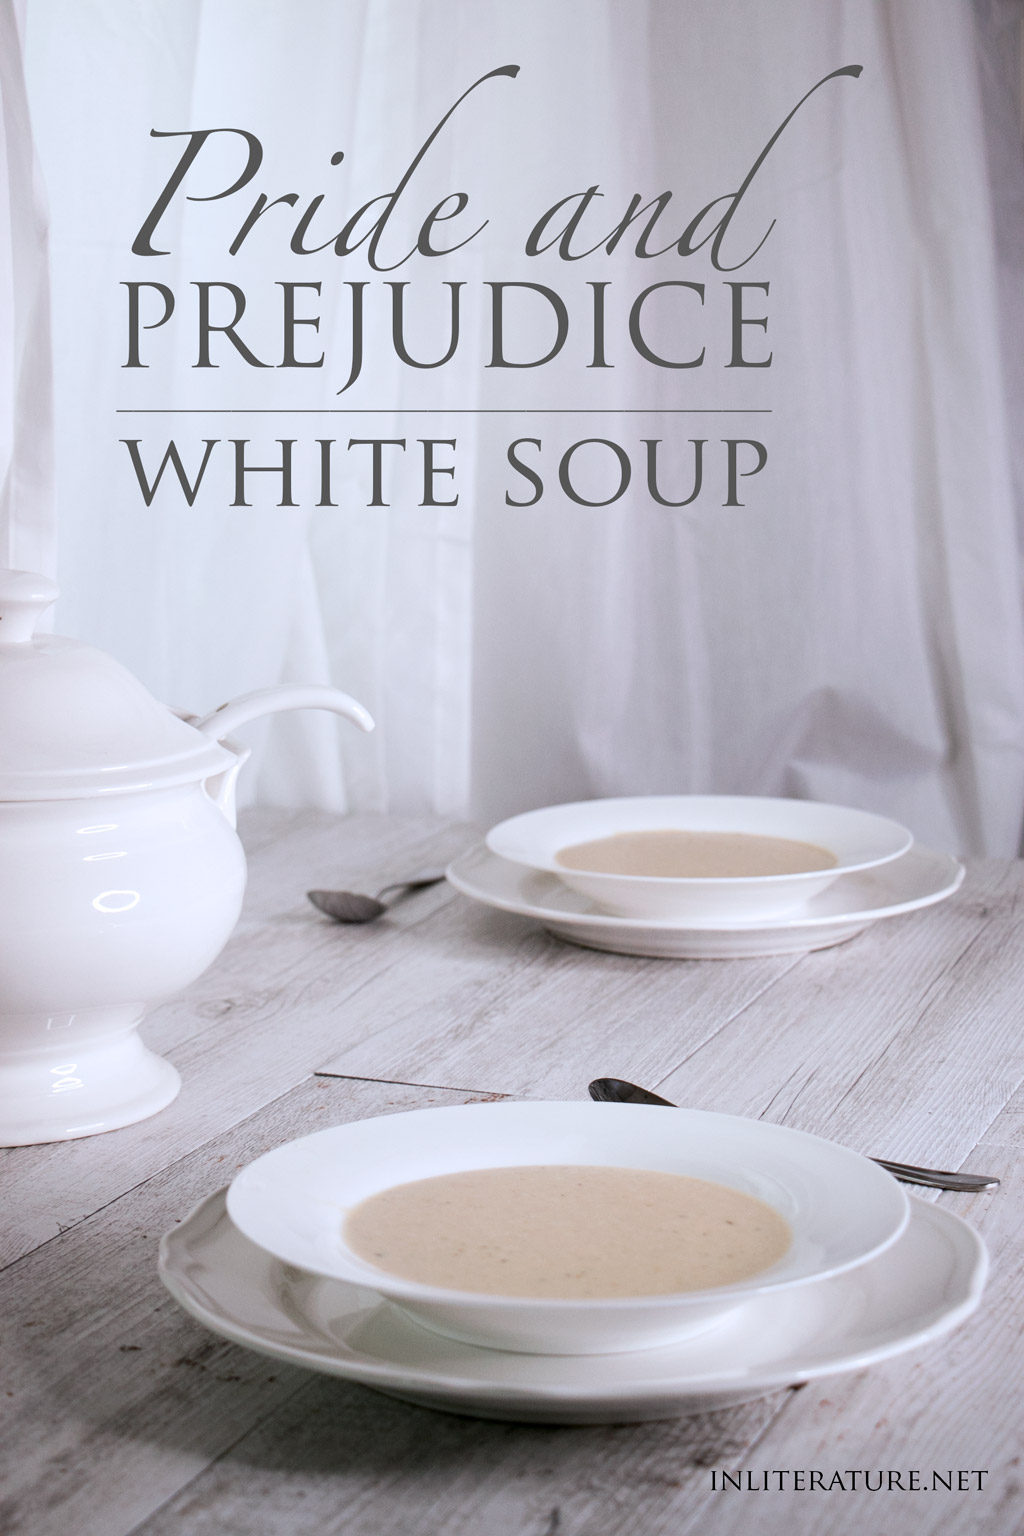 Celebrate Jane Austen's bicentenary with this white soup recipe that was made for Mr. Bingley's Netherfield Ball.